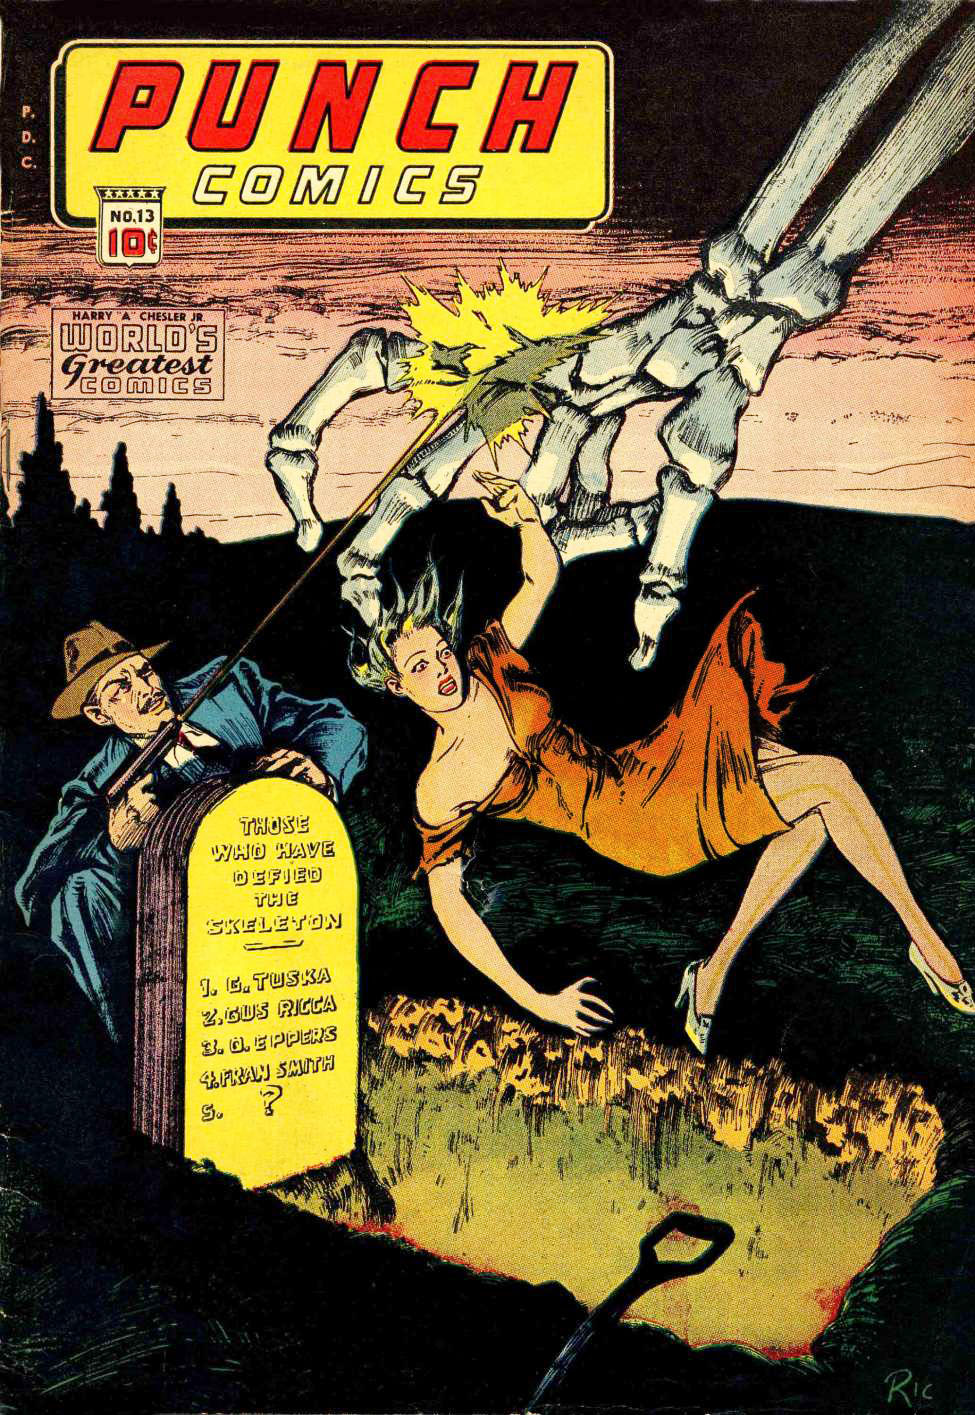 Punch Comics #13, Chesler